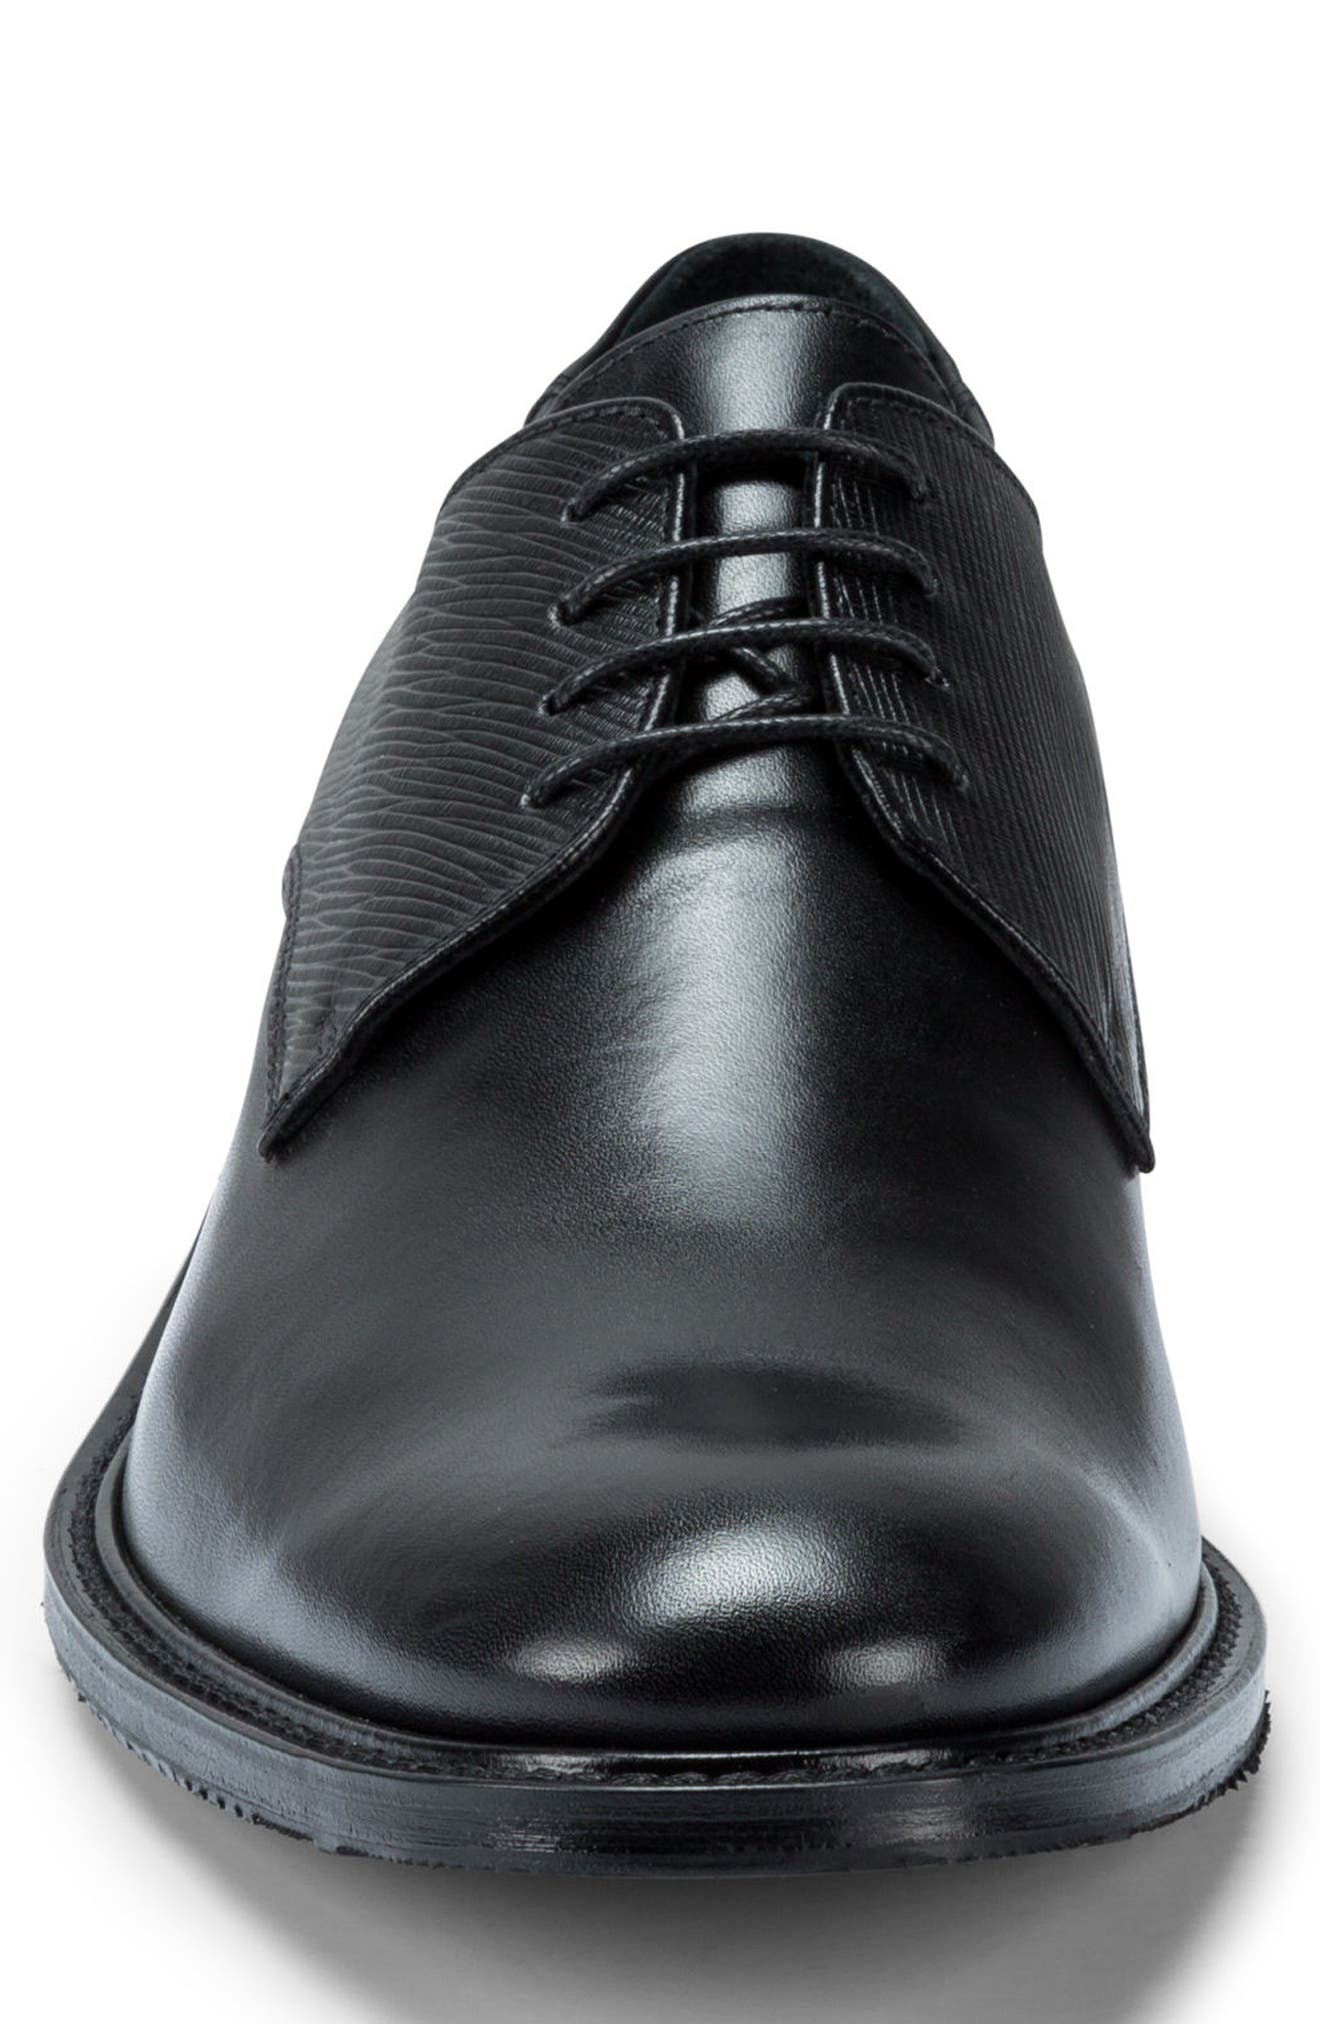 Sorrento Plain Toe Derby,                             Alternate thumbnail 4, color,                             Nero Leather